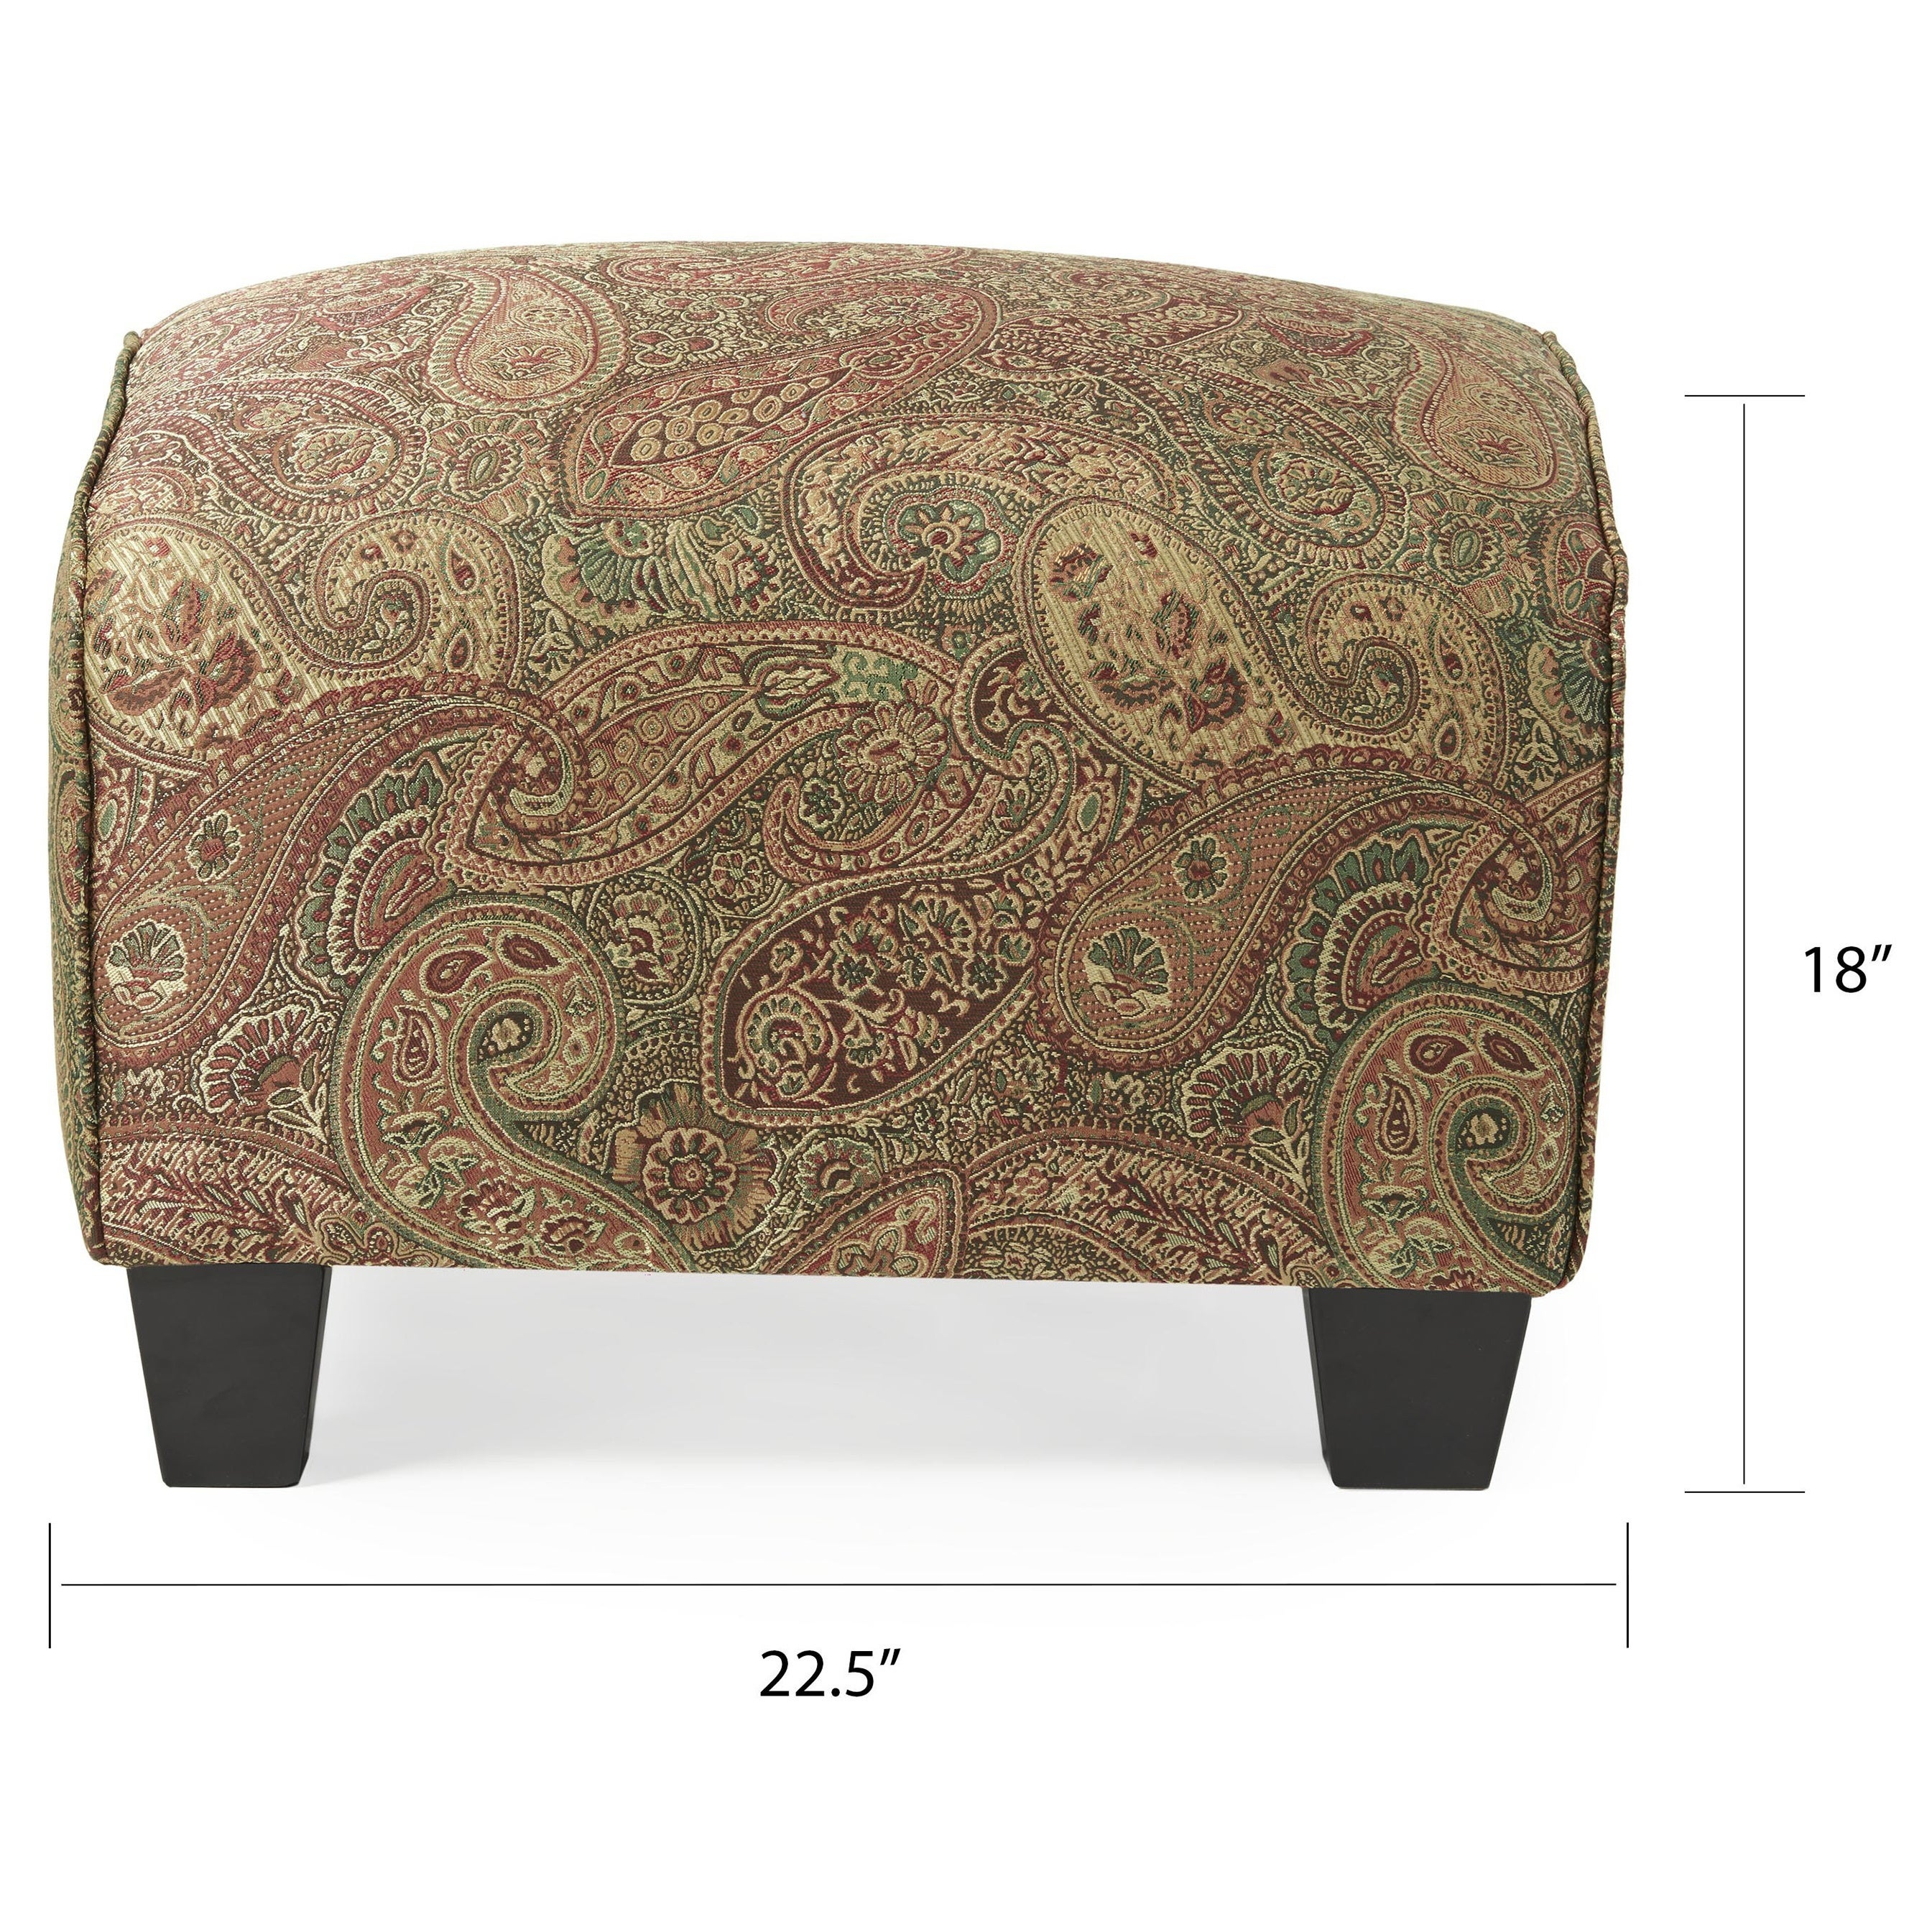 chair and chairs storage product on gallerie breeze home decor shipping bali free garden round ottoman ottomans overstock